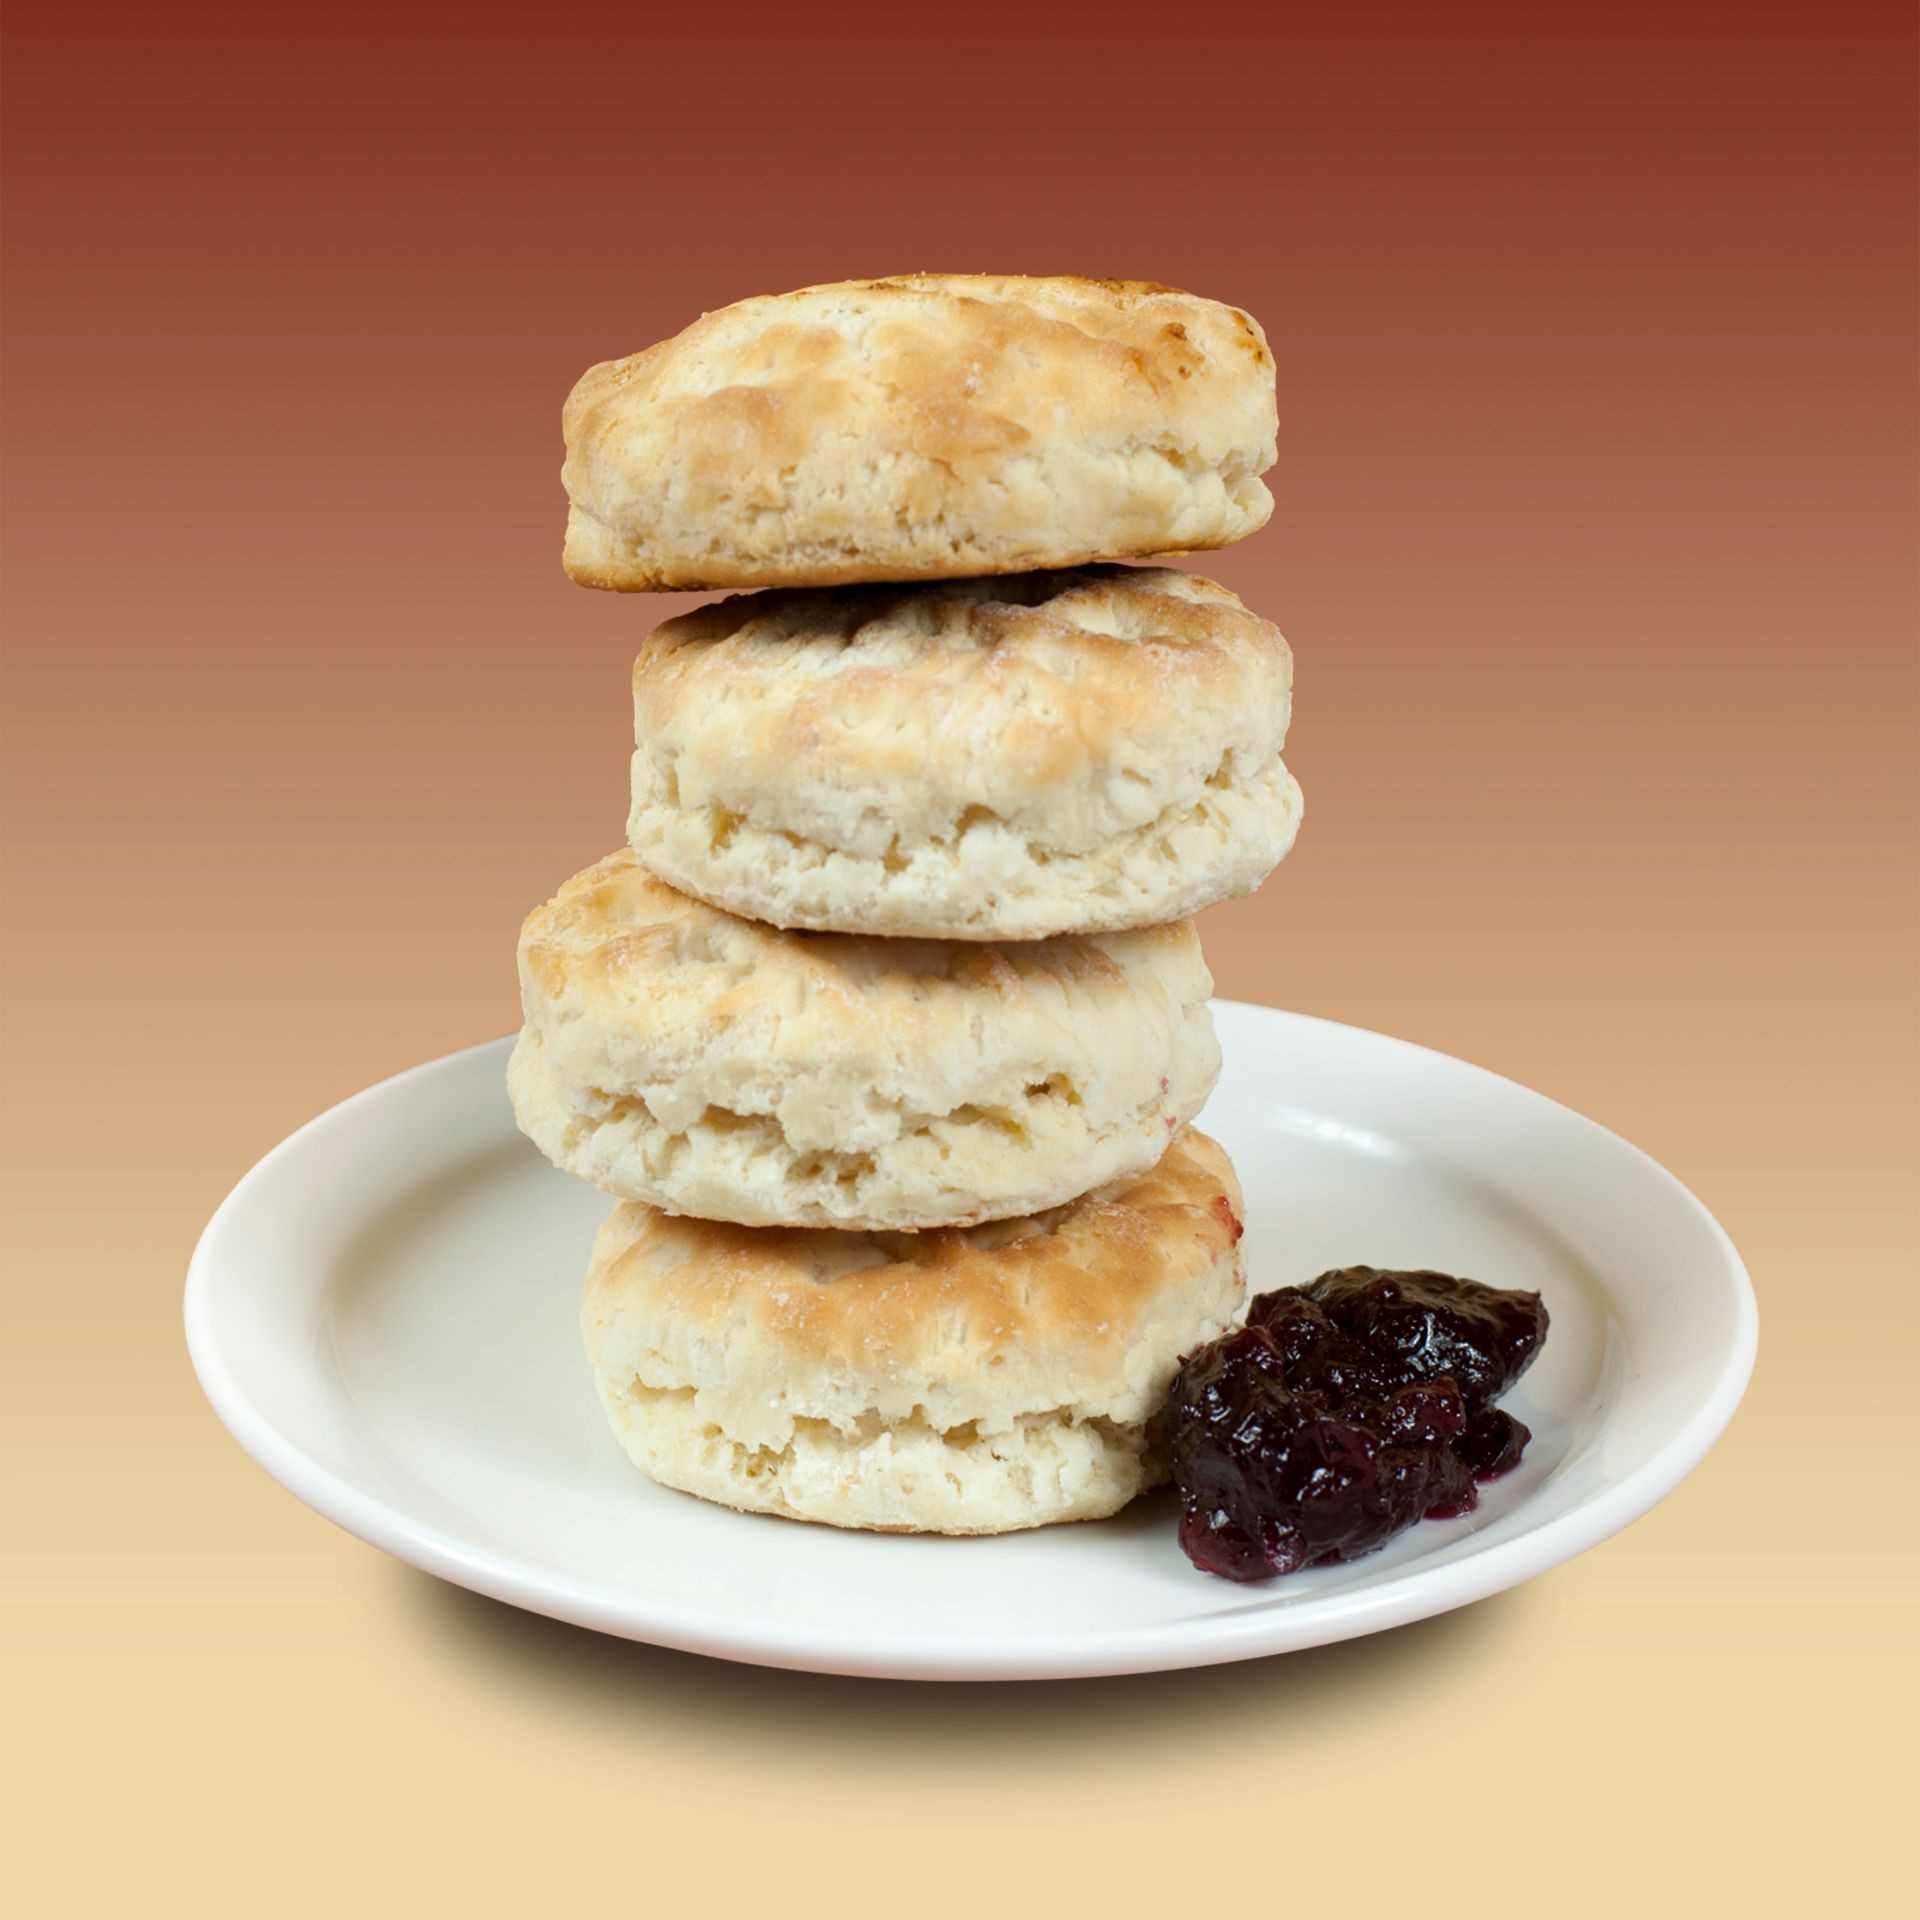 Biscuits stacked up on a plate